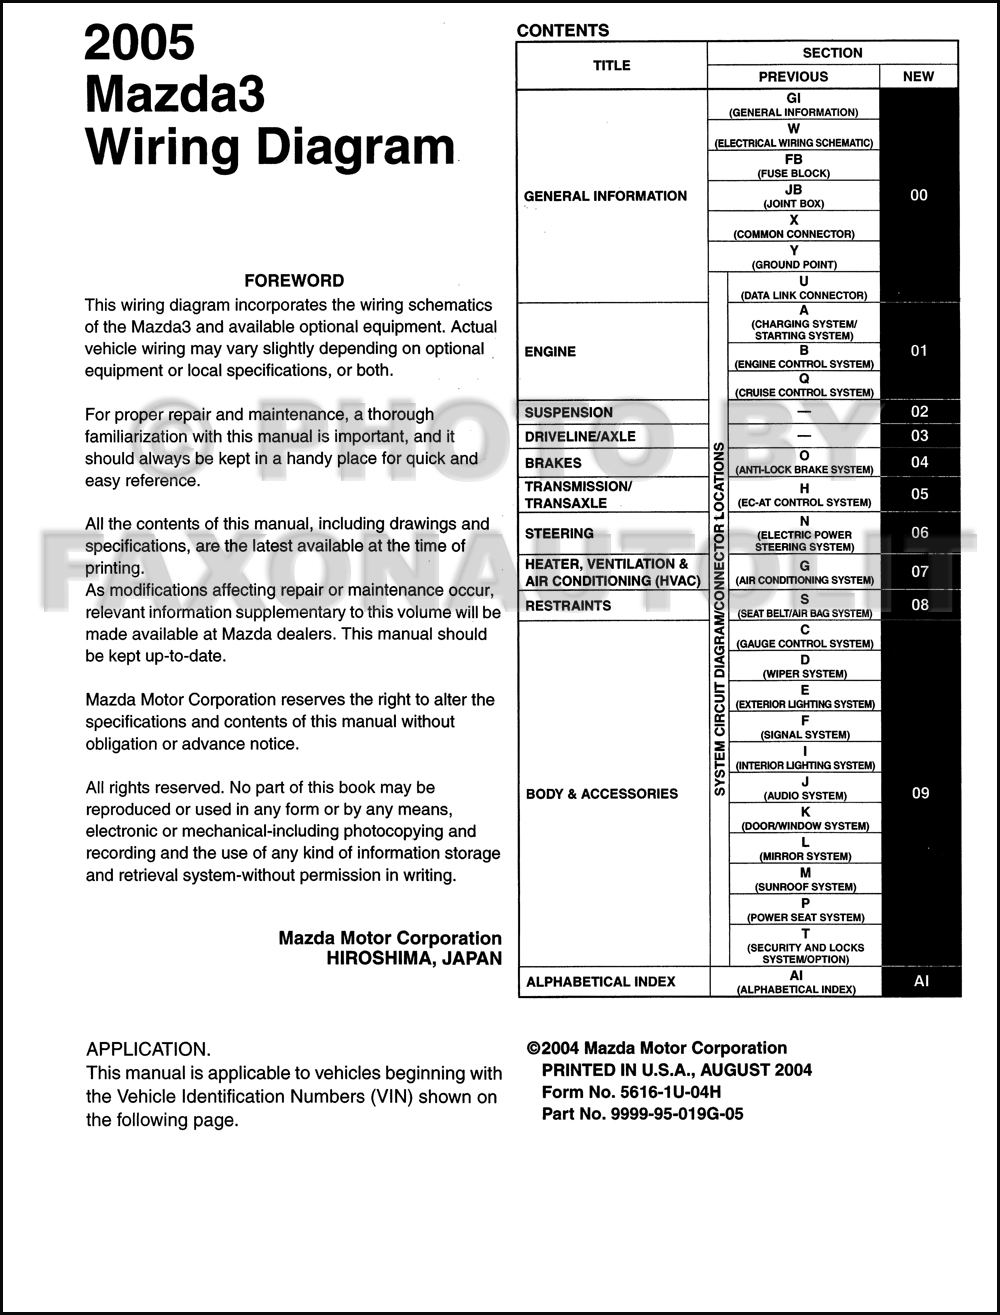 medium resolution of 2005 mazda 3 wiring diagram manual original 2004 mazda 3 wiring diagram to fuse box 2005